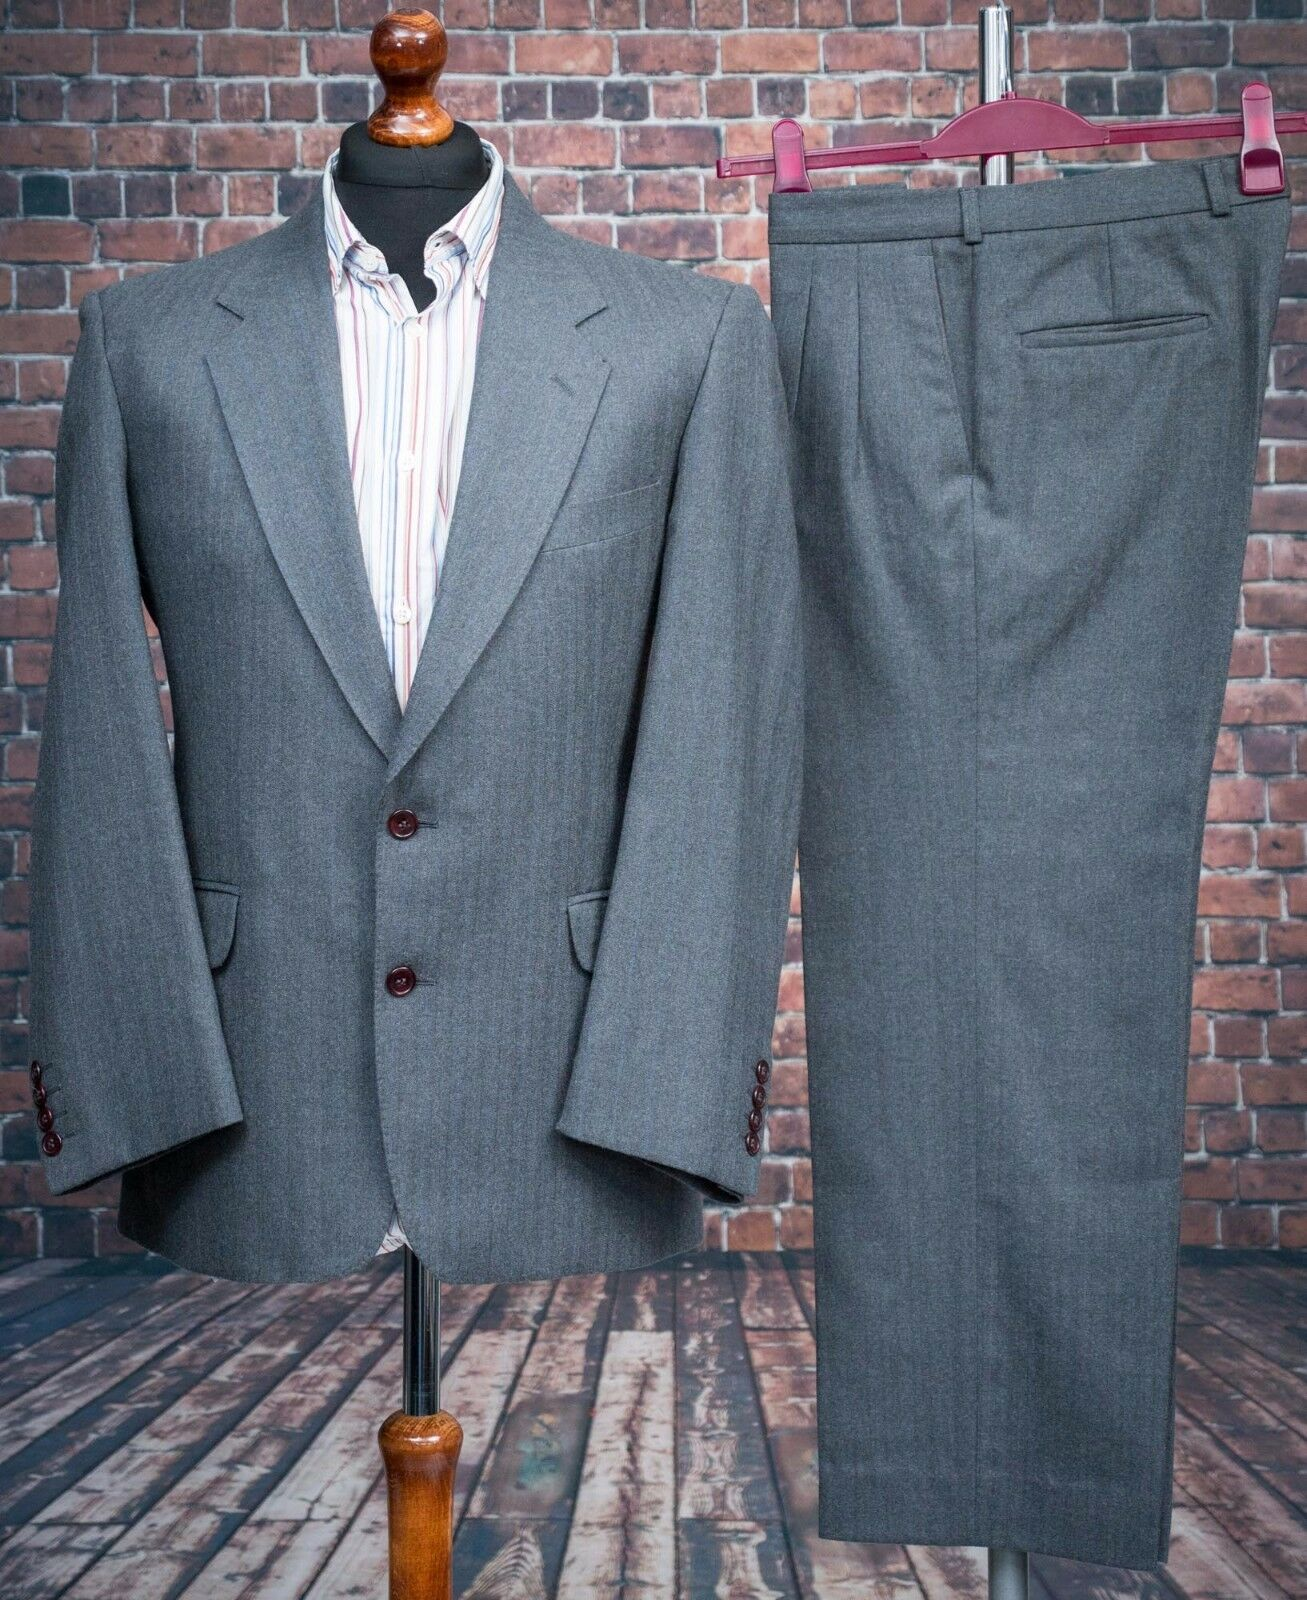 Centaur Vintage Grau Pinstripe Single Breasted Wool Trouser Suit 40S 32W 26L